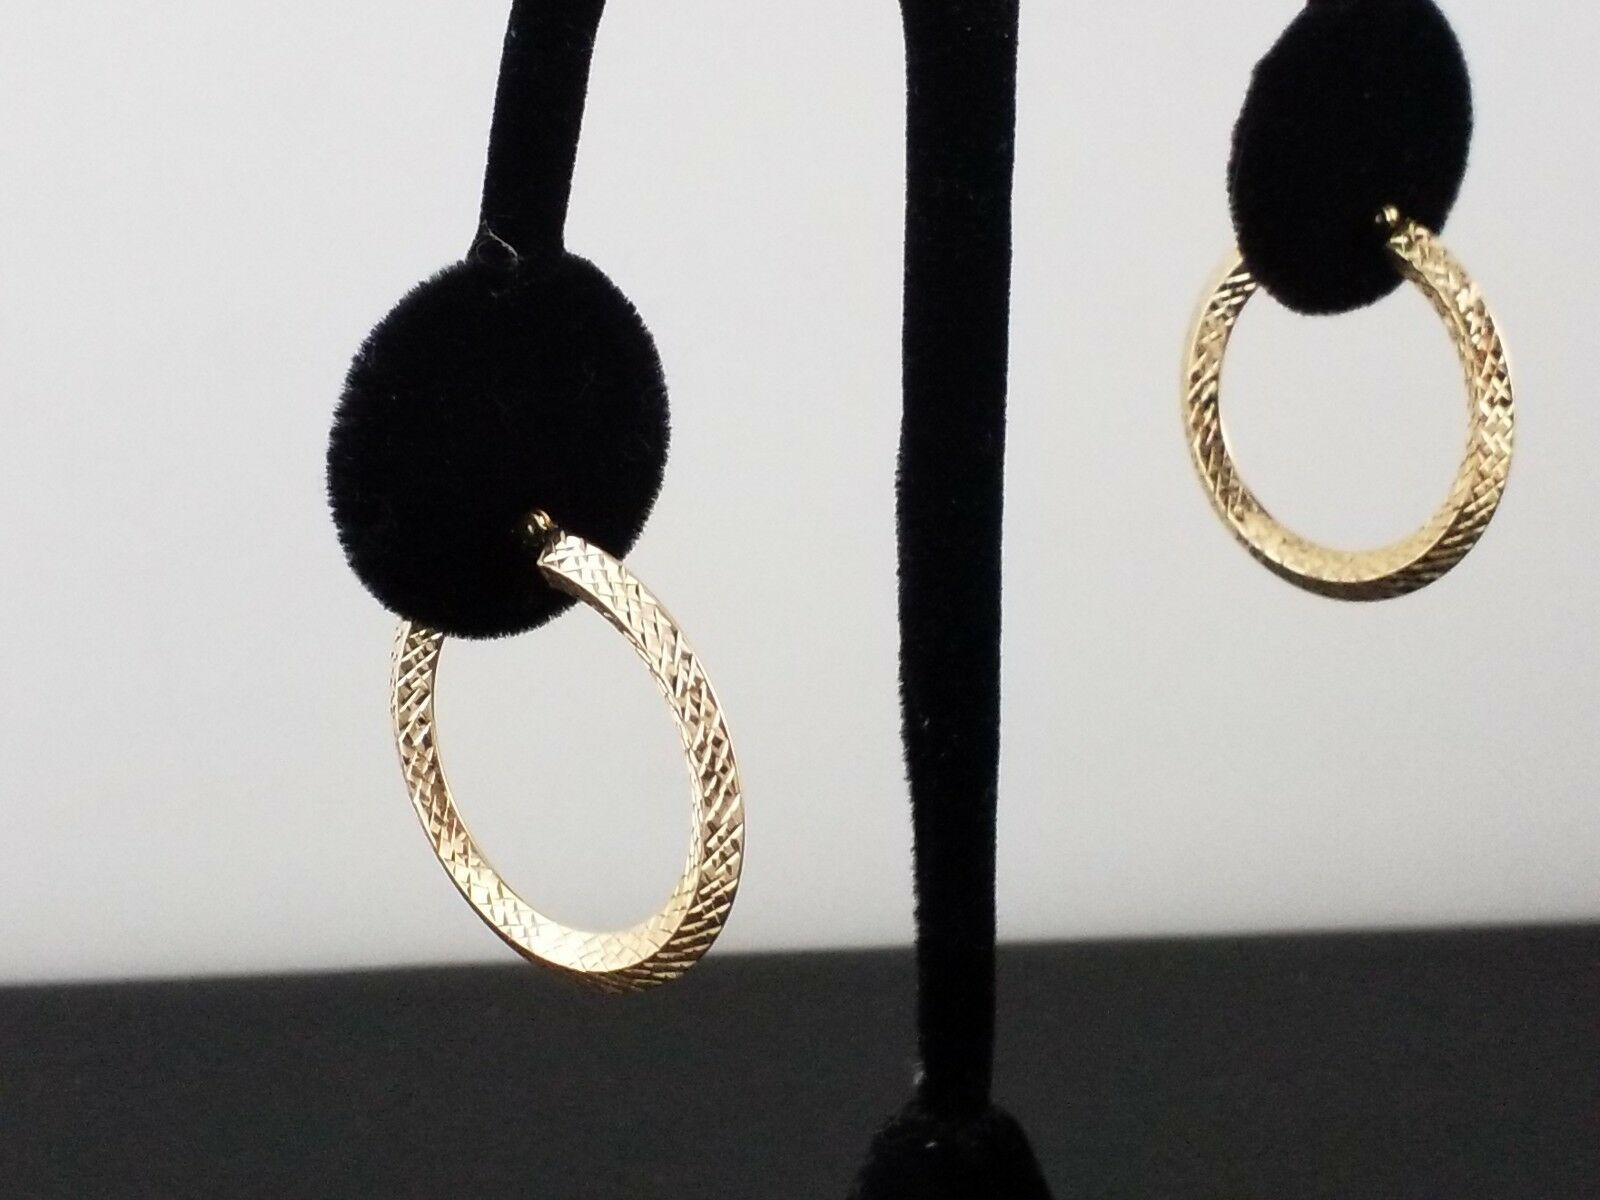 1 1 4 inch Hoop earrings, 14k yellow gold with cross etched pattern